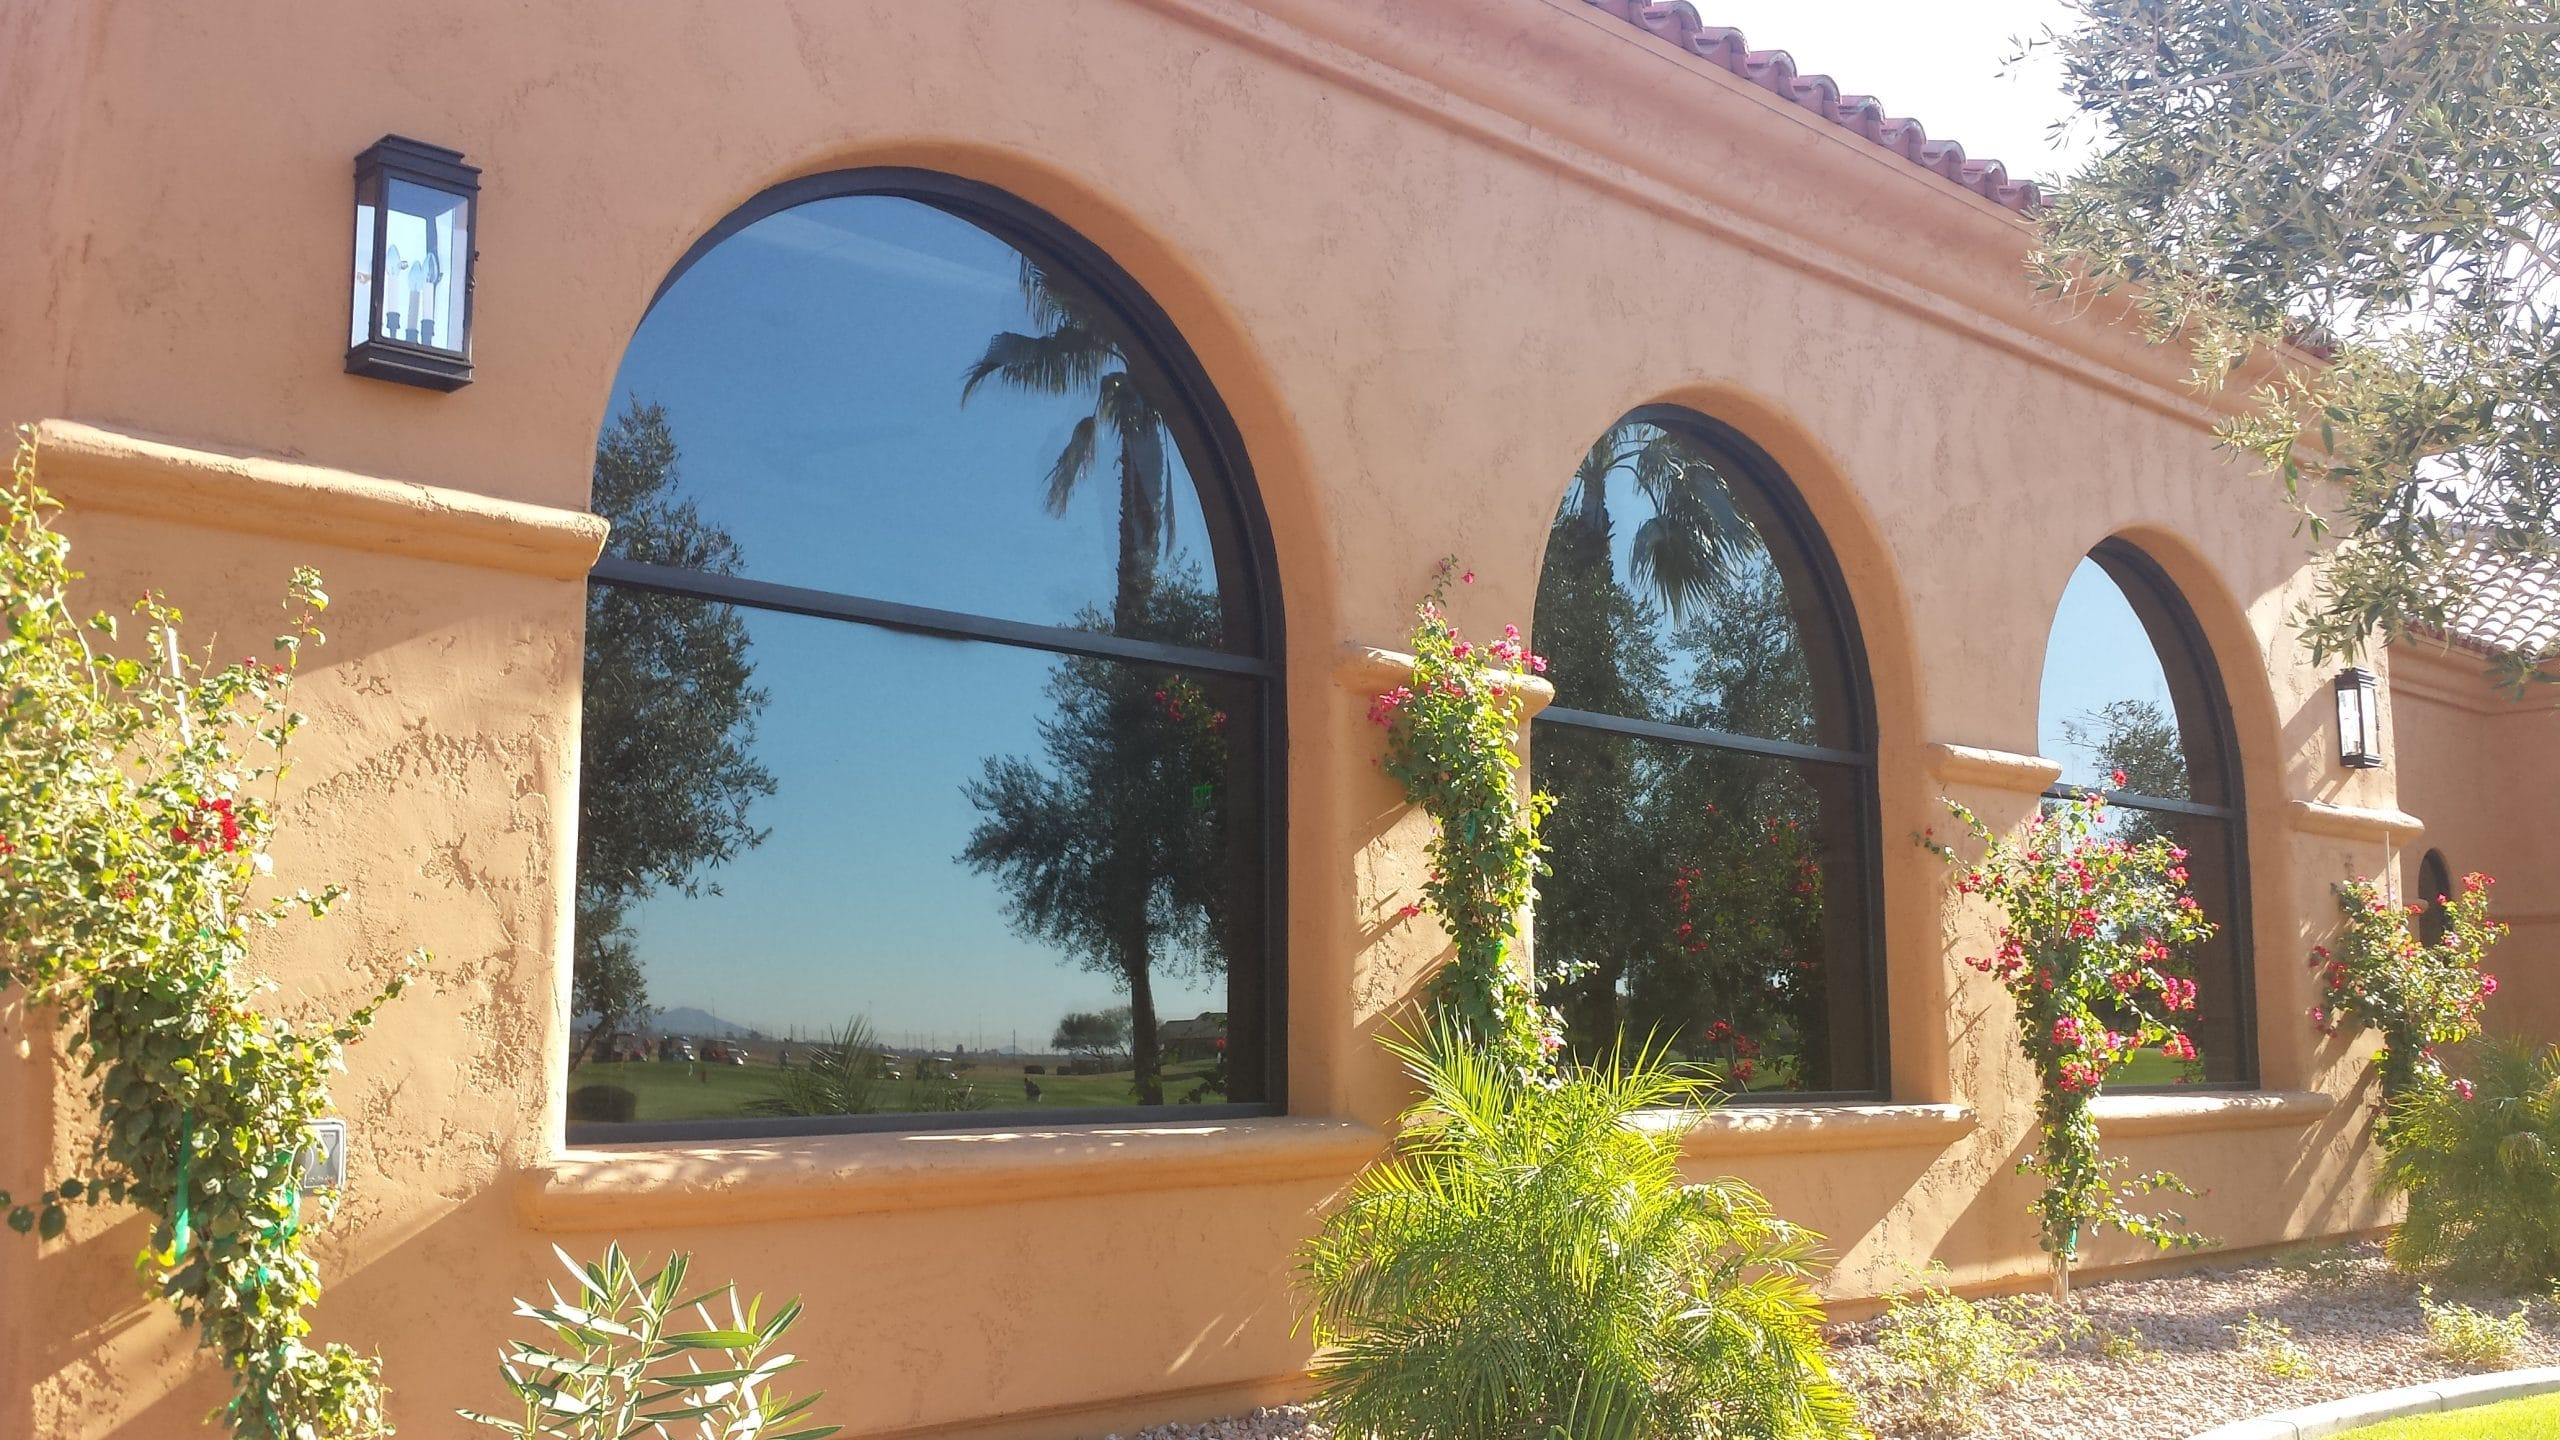 Residential windows - exterior custom window design with arches